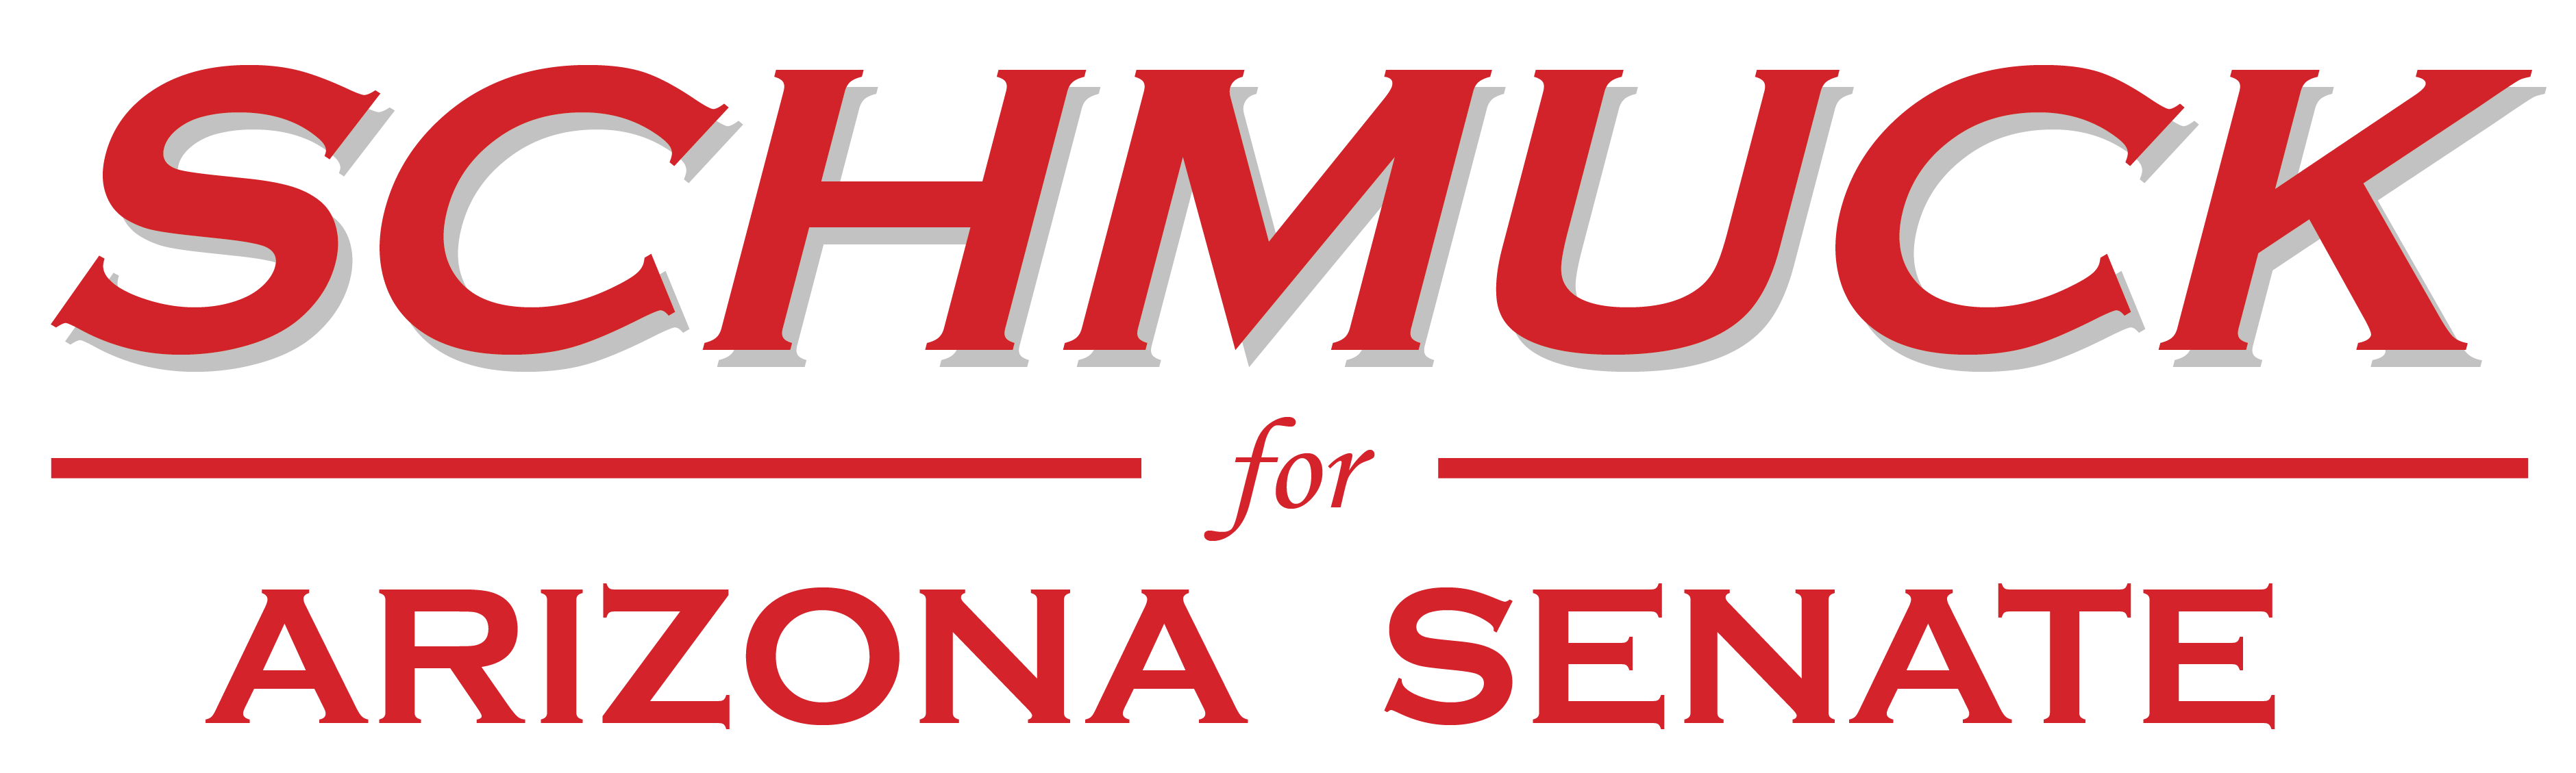 Frank Schmuck for Arizona Senate